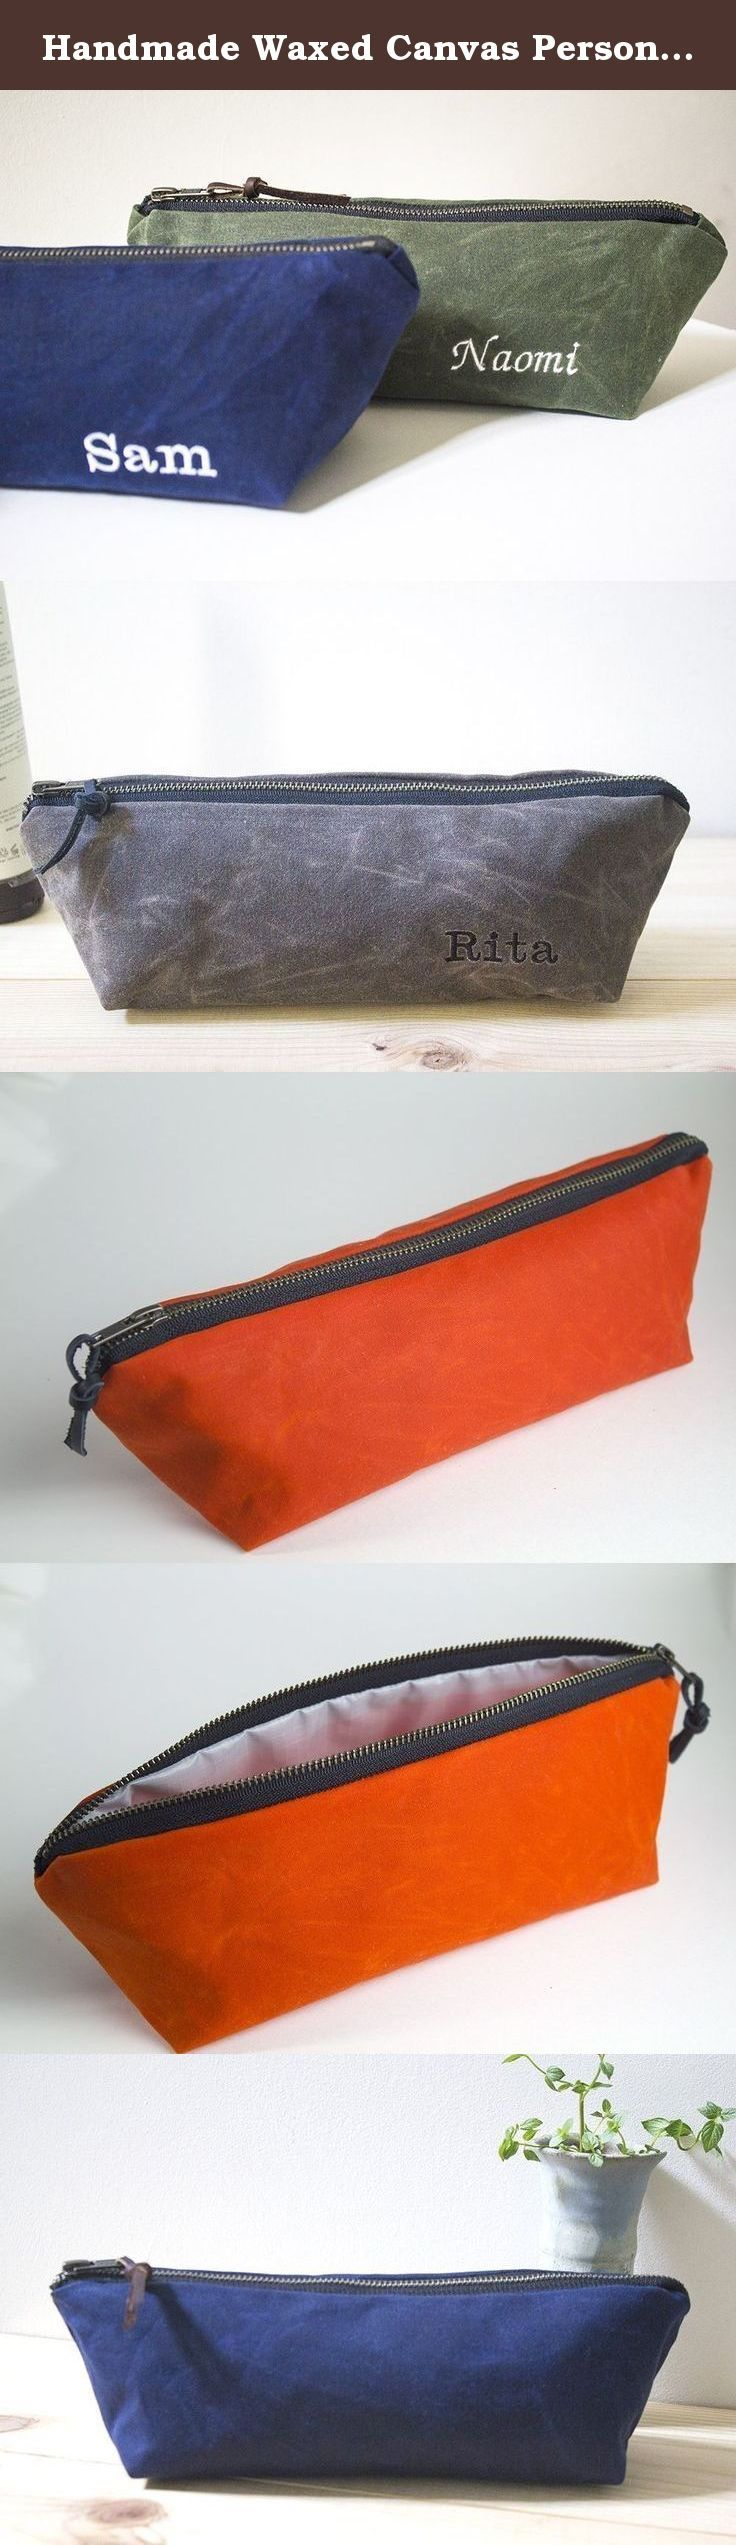 Handmade Waxed Canvas Personalized Unisex Zippered Pouch, Toiletry bag, Cosmetic Bag, Pencil Bag, Gift for Him, Gift for Her - Water Resistant Available in 8 Colors - Monogramming available. This listing is for ONE (1) Zipper Pouch. Each item is hand-made by me. Quality is my top priority. The Zipper Pouch are available in 8 different colors: Blue (shown), Blush Brown, Olive Green, Dark Oak, Gray, Tan, Orange and Black. The Unisex Zipper Pouch is great as a toiletry bag or as a cosmetic…